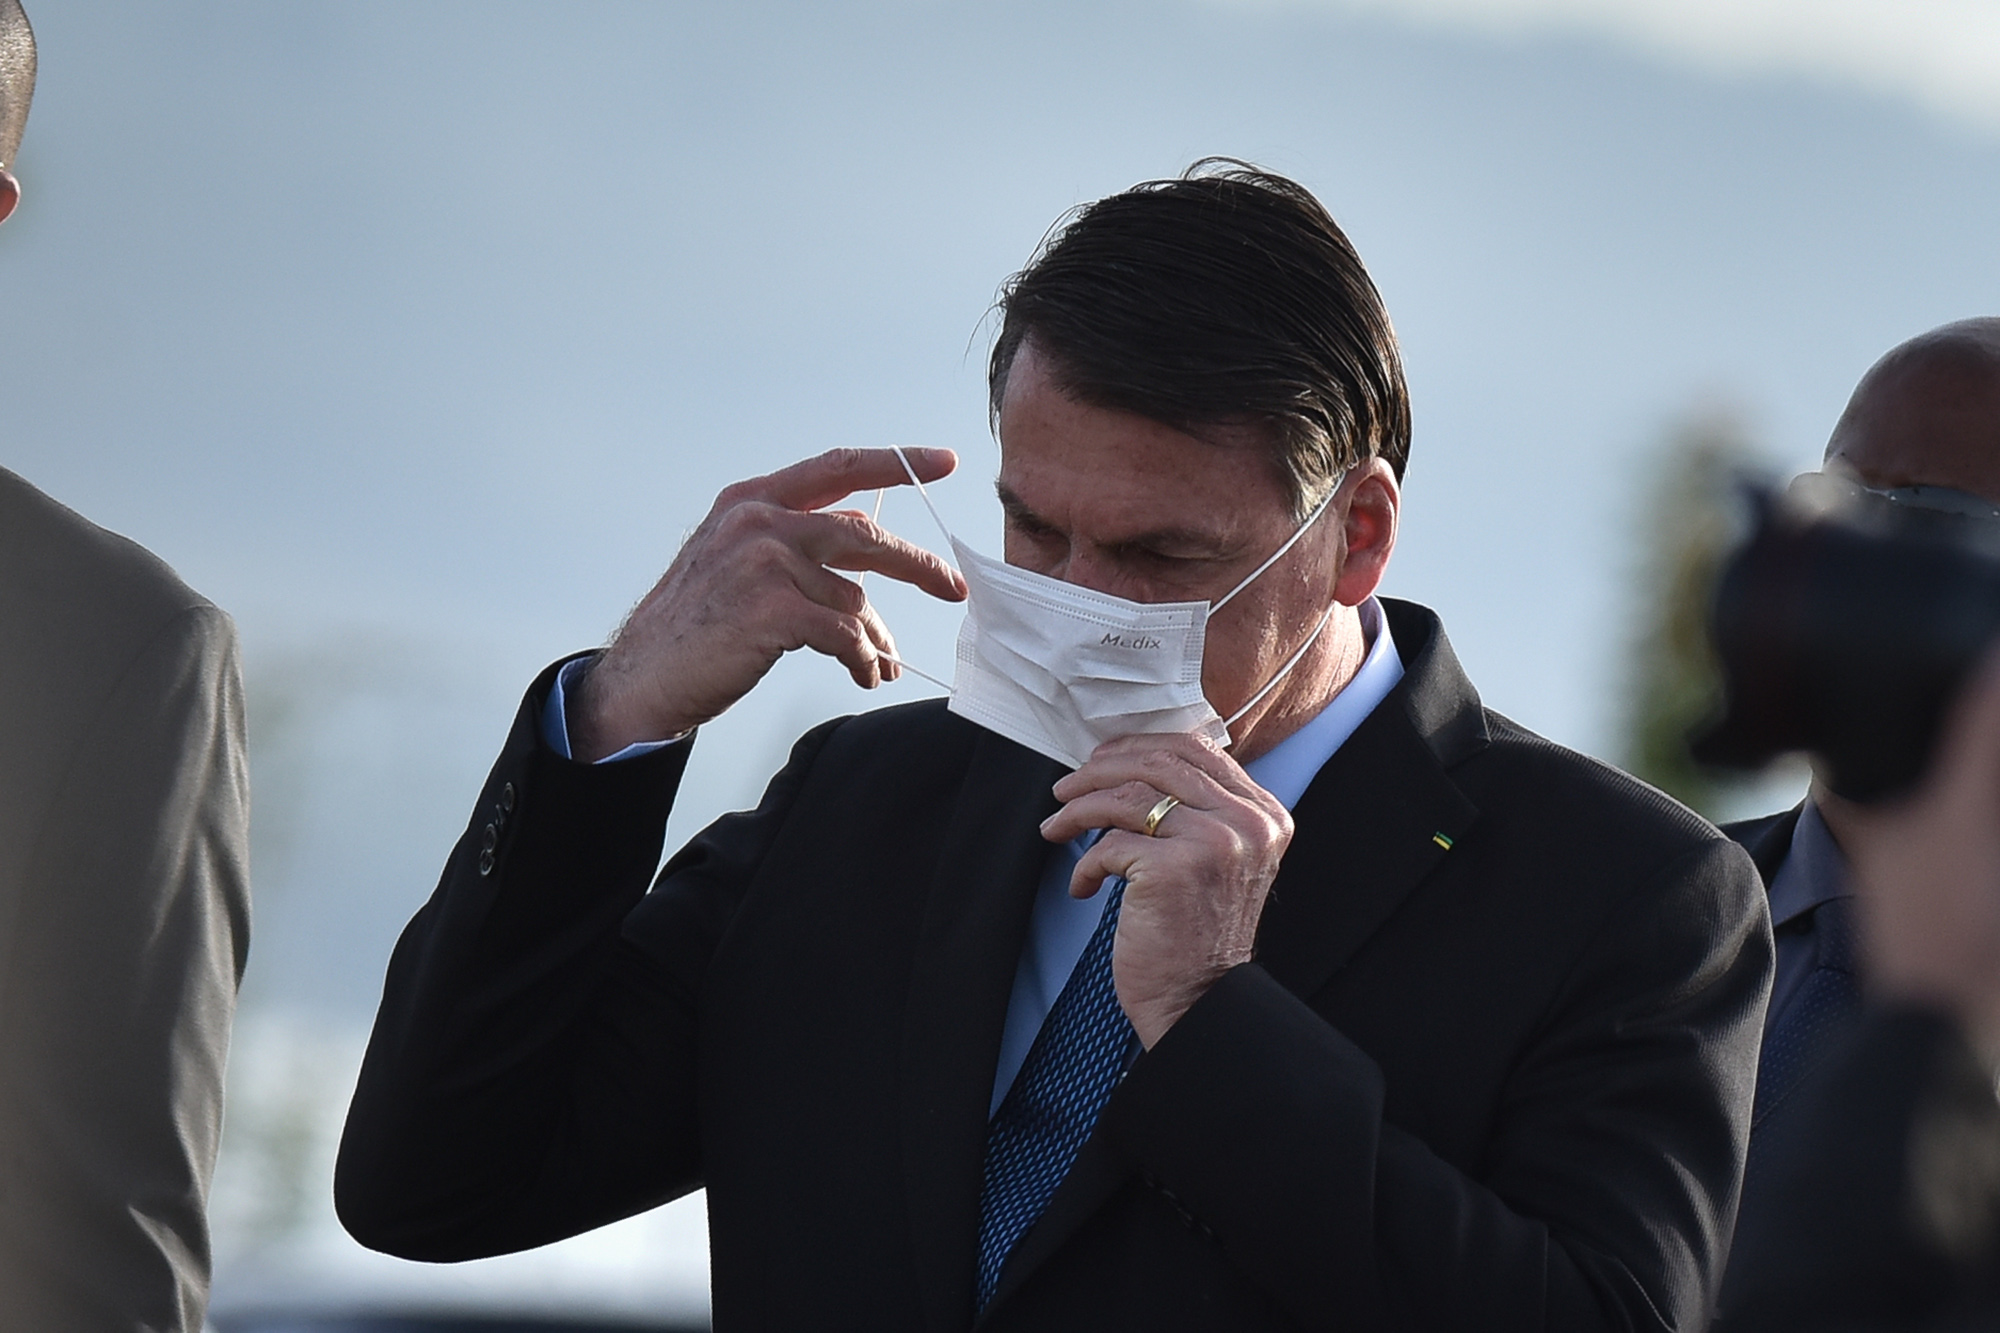 Brazil's President Jair Bolsonaro wears a face mask when arrives for the National Flag Raising ceremony in front of Alvorada Palace amid the coronavirus pandemic, in Brasilia, Brazil, on Tuesday, June 9.